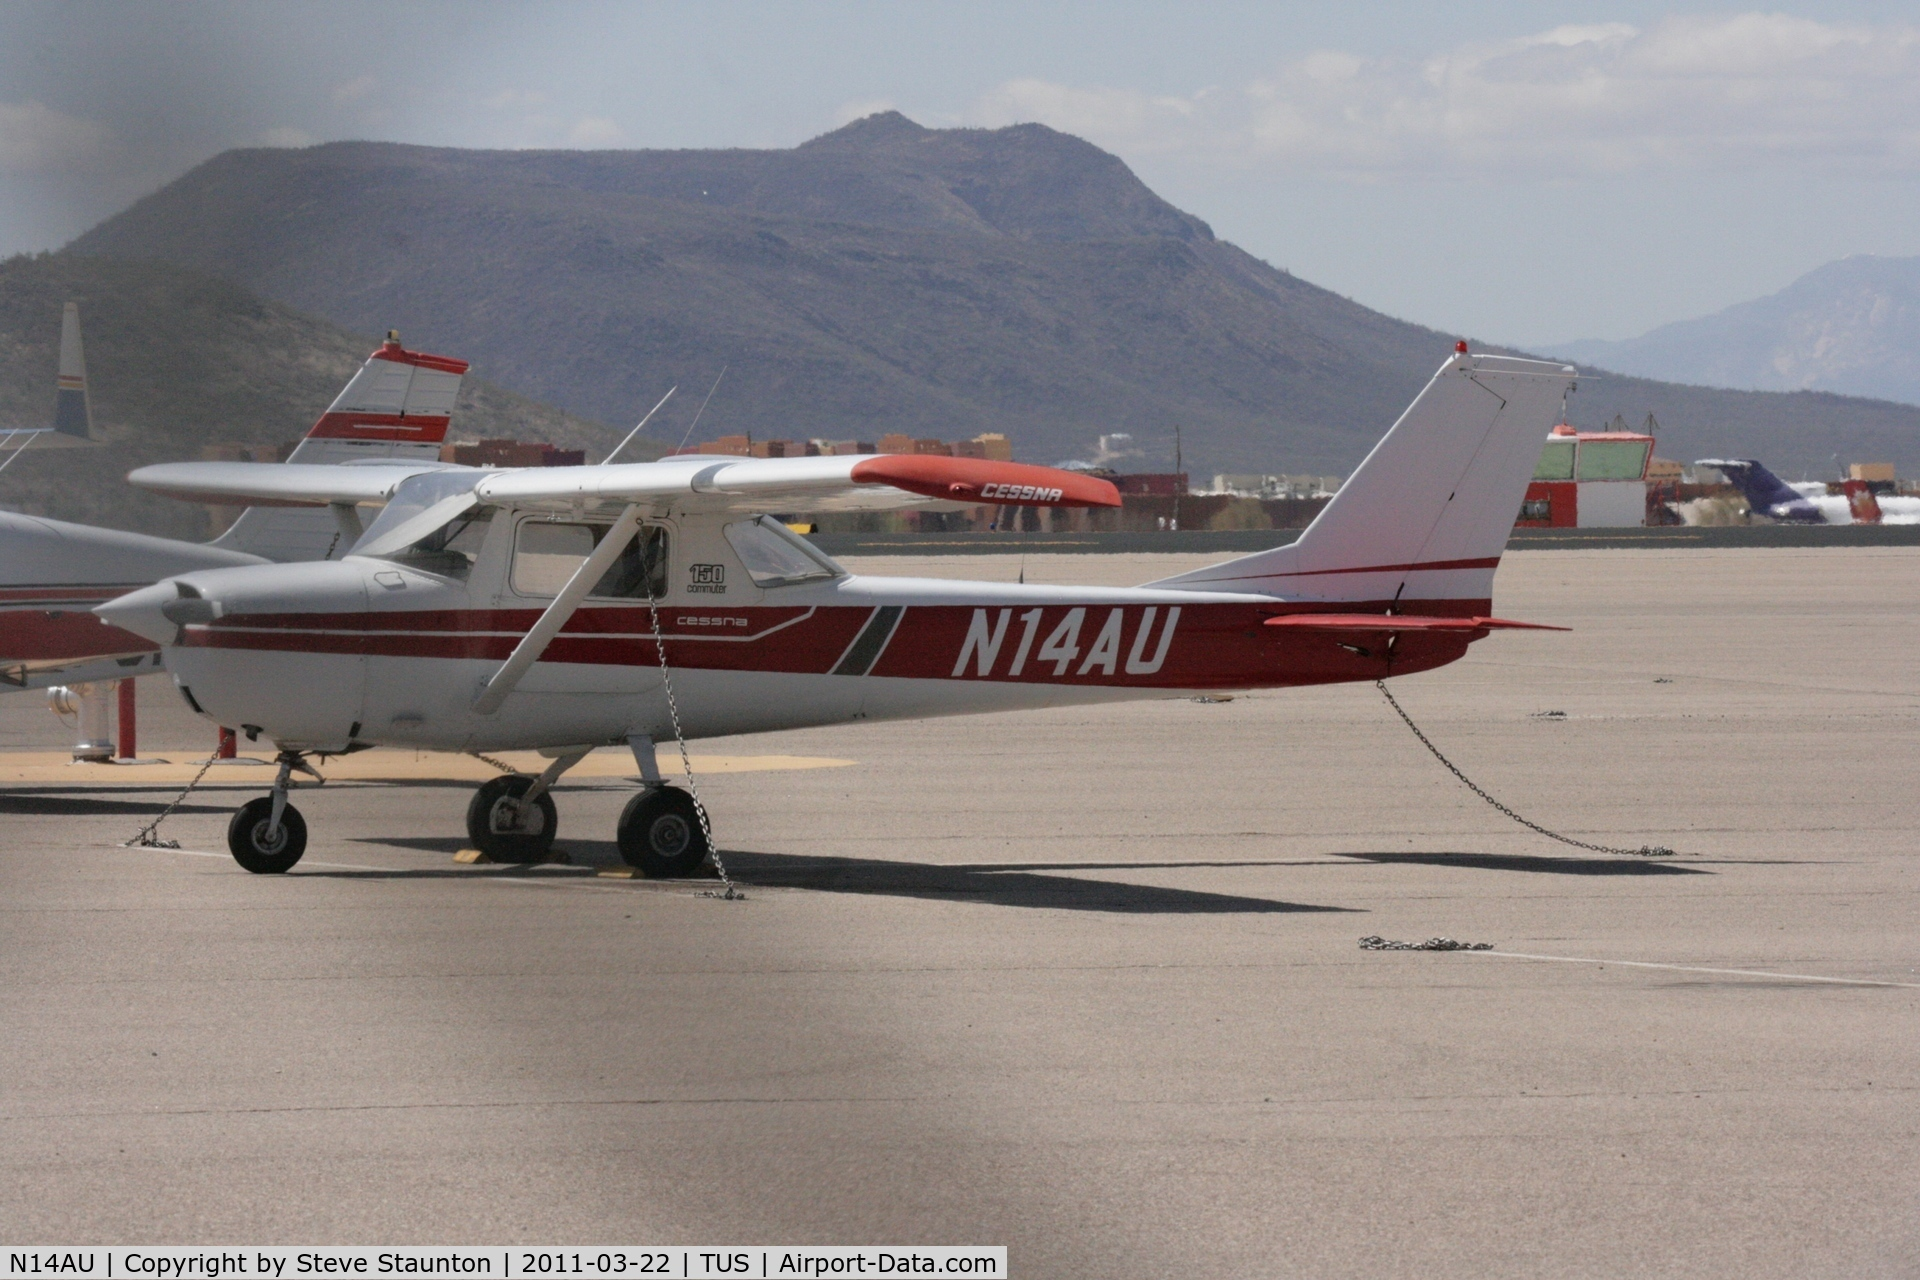 N14AU, 1967 Cessna 150G C/N 15064814, Taken at Tucson International Airport, in March 2011 whilst on an Aeroprint Aviation tour